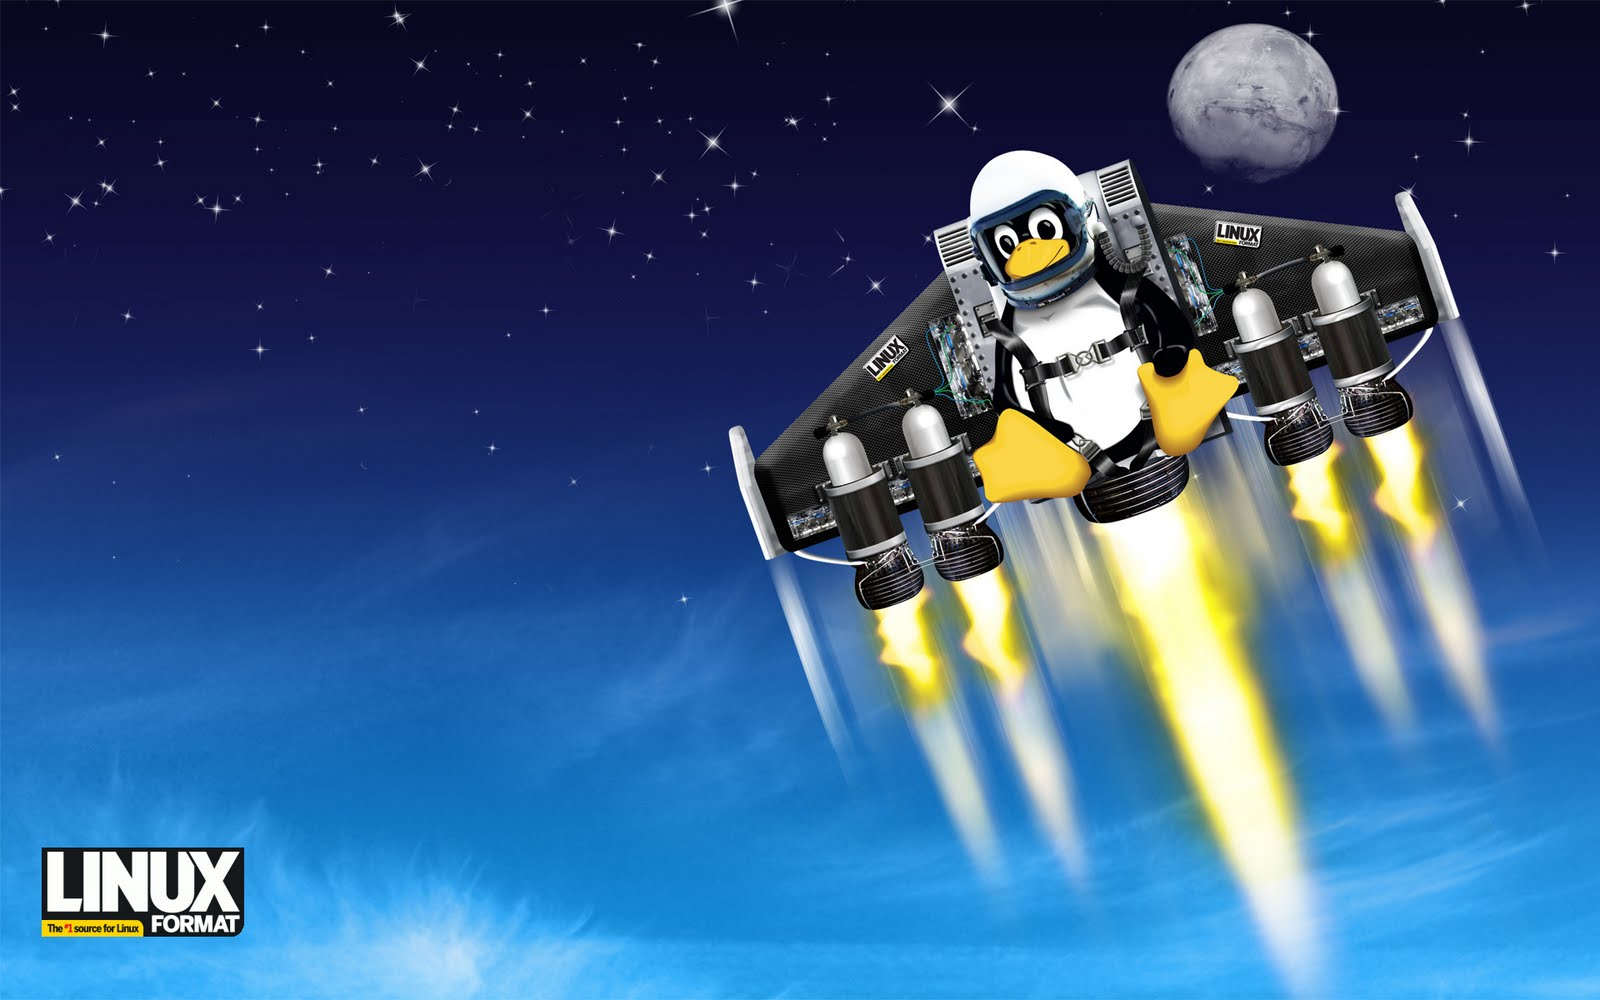 fight for linux wallpaper - photo #11